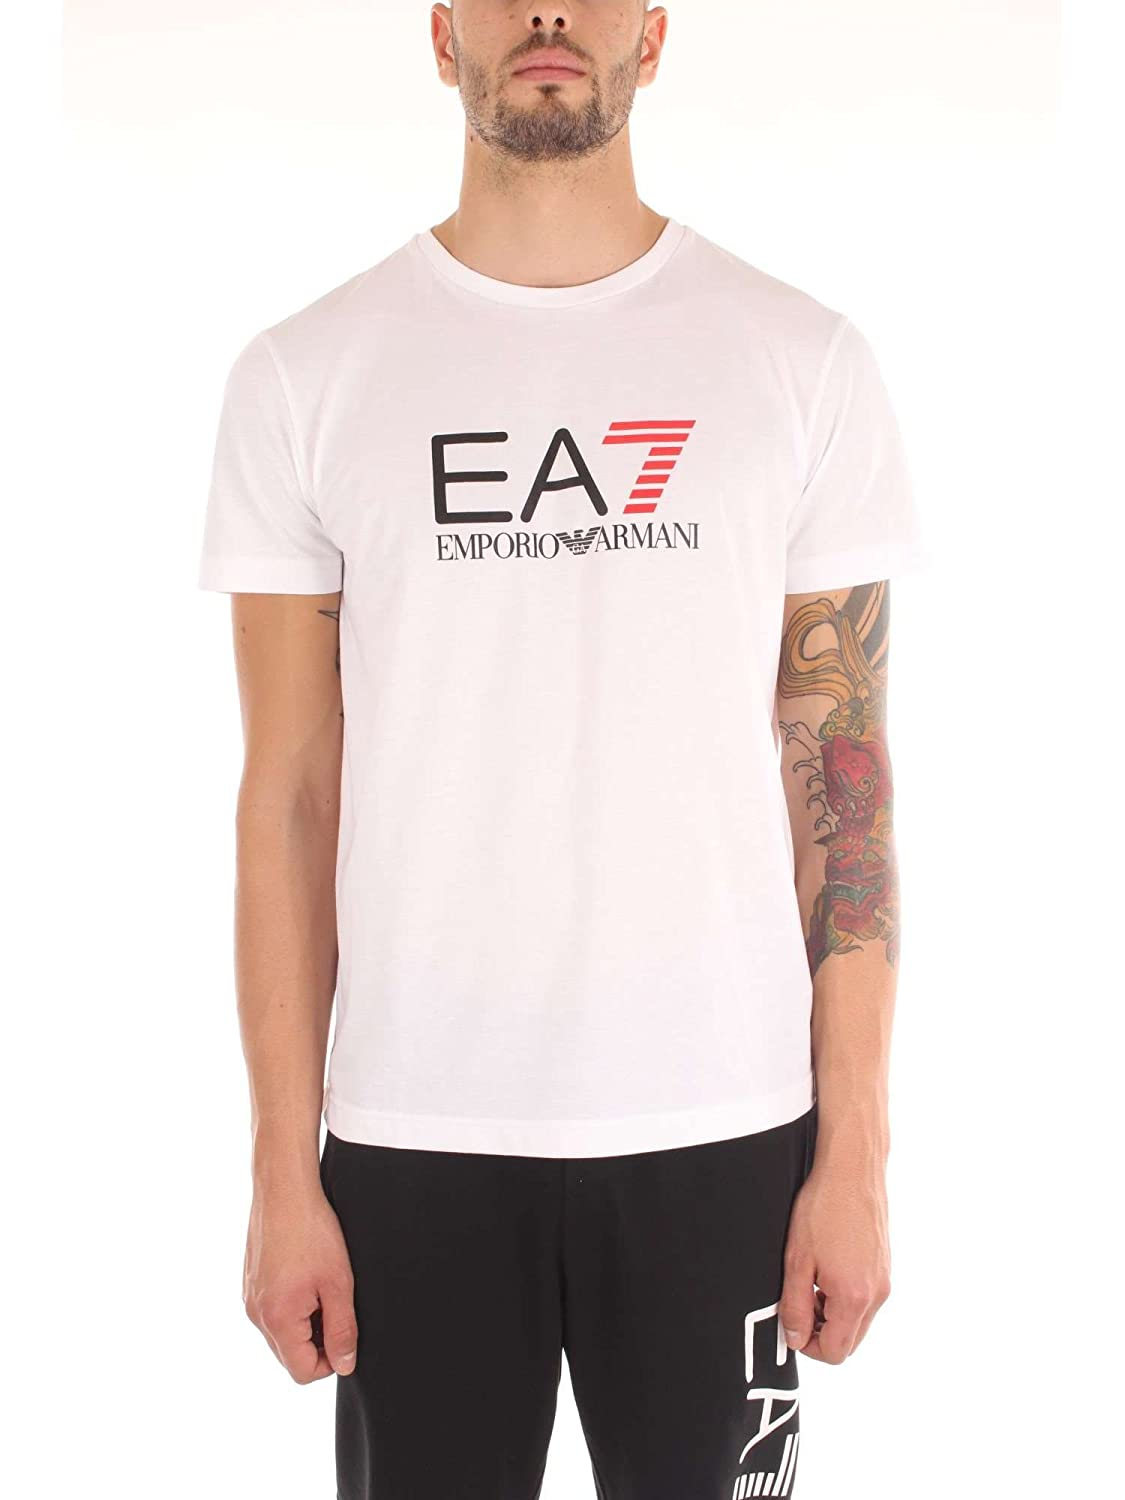 Emporio Adosmanos 6yptc0 Low Armani co Ea7 Shirt Homme cr Cost T 1ExqfaPw